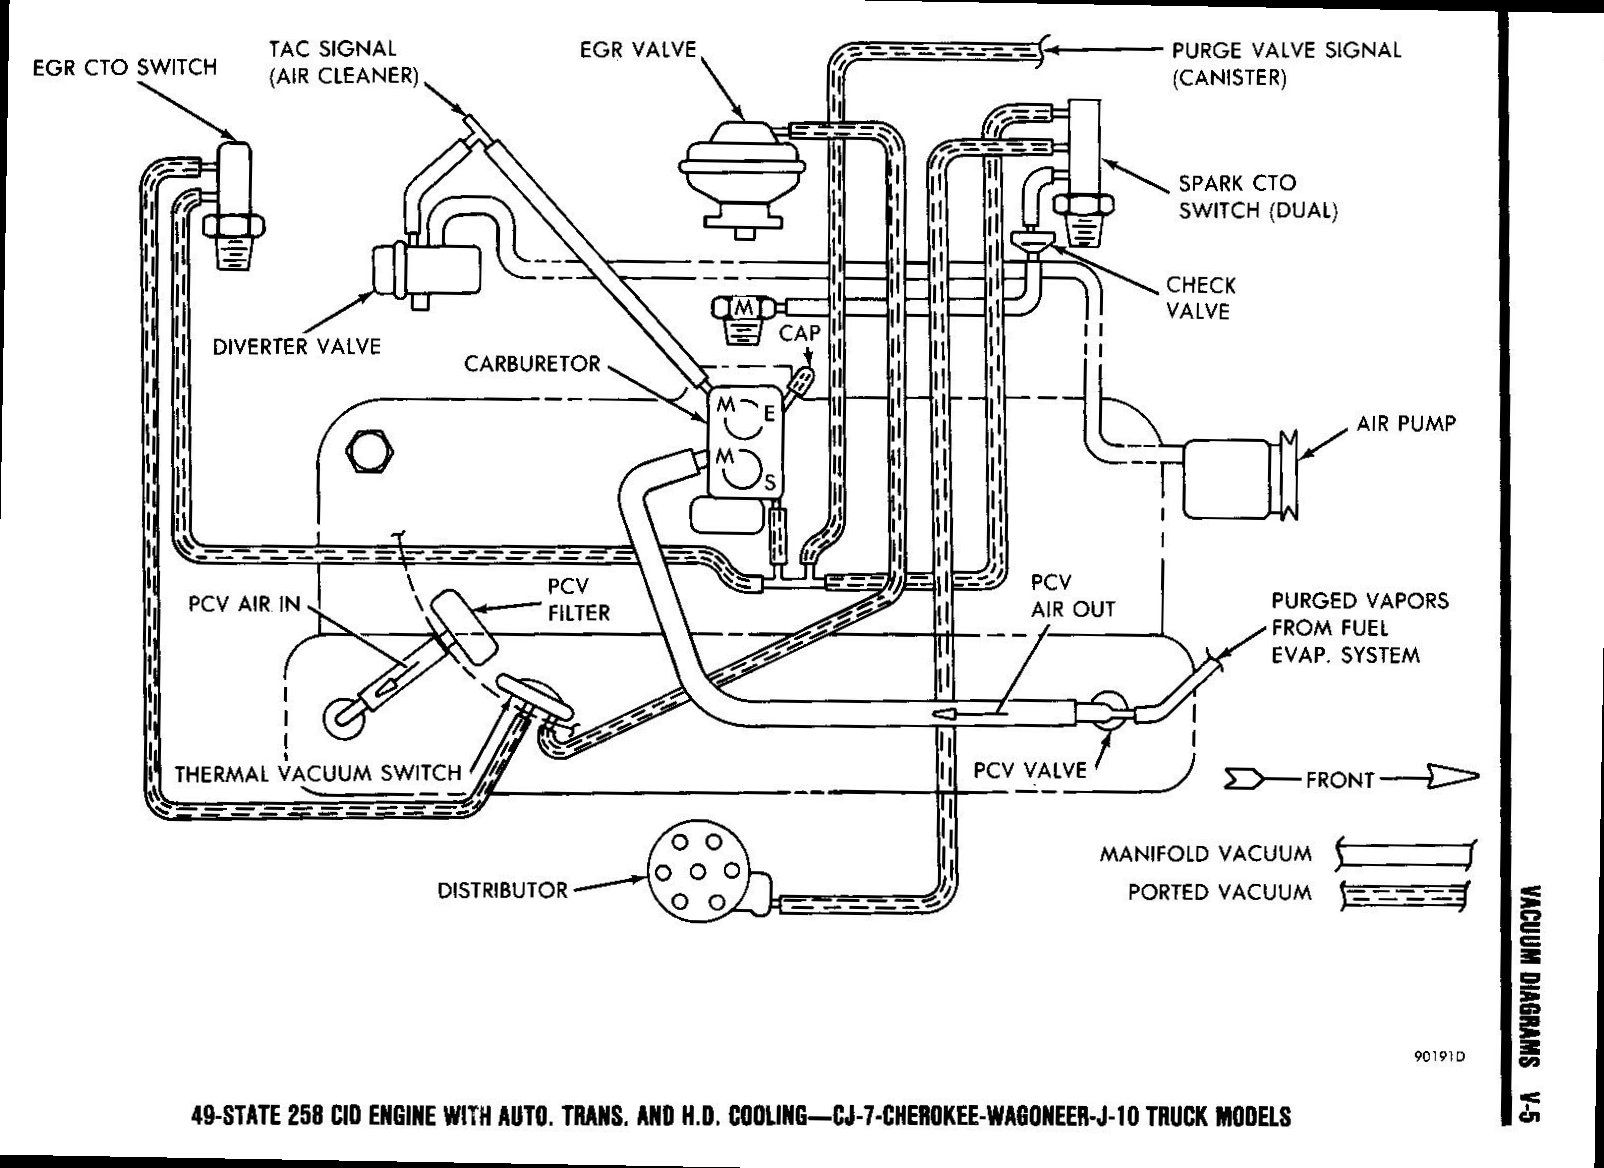 hight resolution of cj5 258 vacuum diagram jeepforum com jeep diagram jeep vacuums 1976 jeep cj5 vacuum line diagram